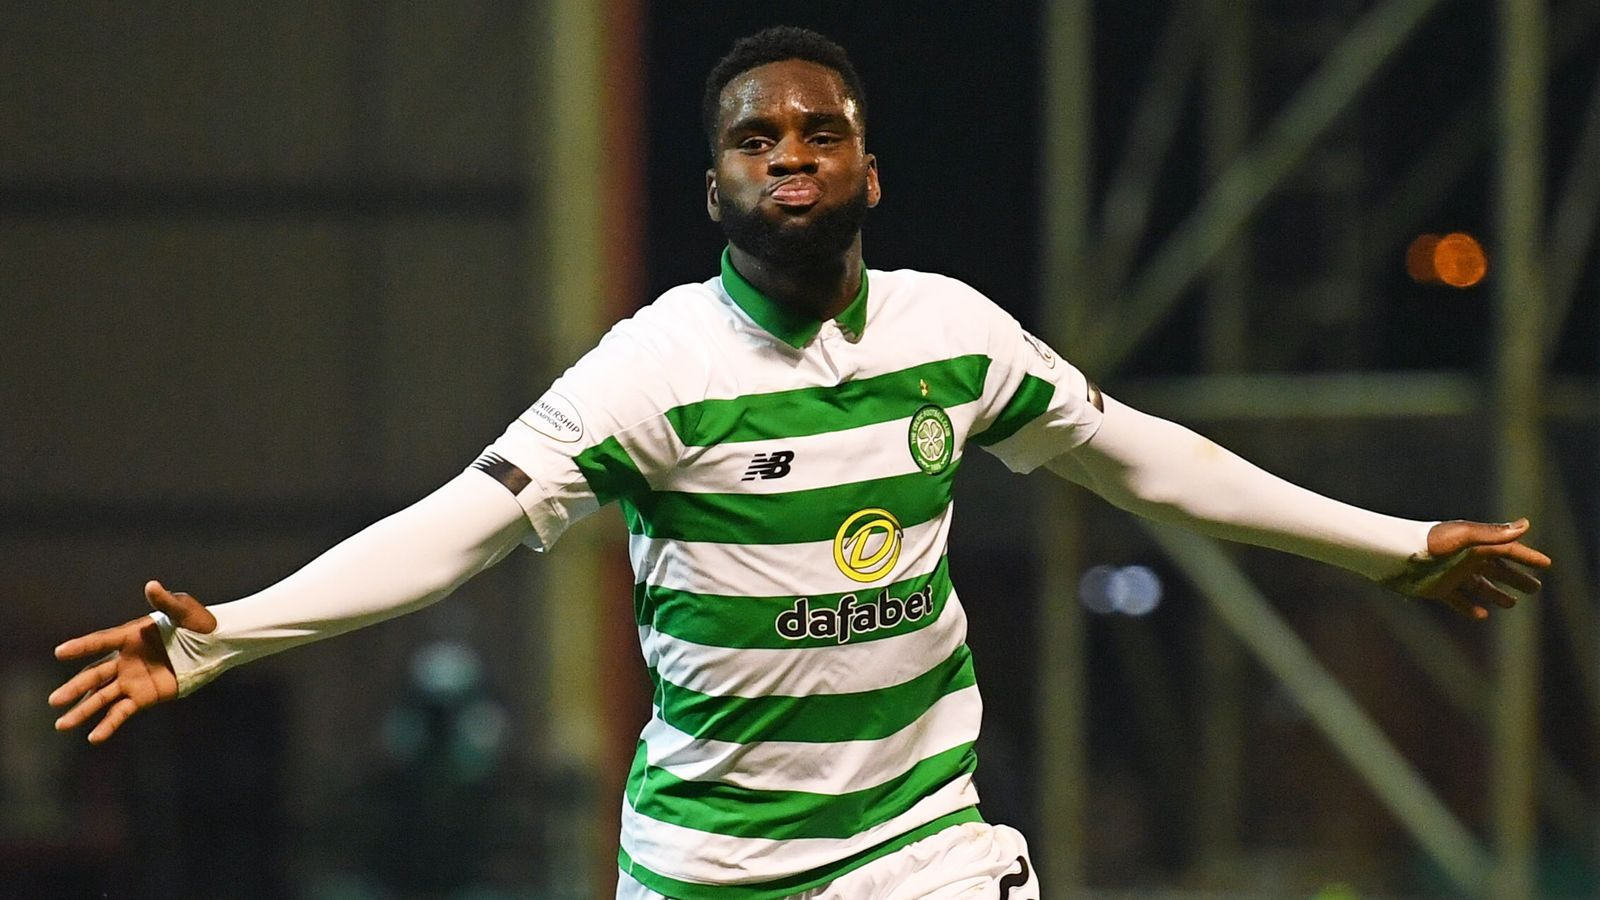 Celtic's Odsonne Edouard good enough to play in any league ...